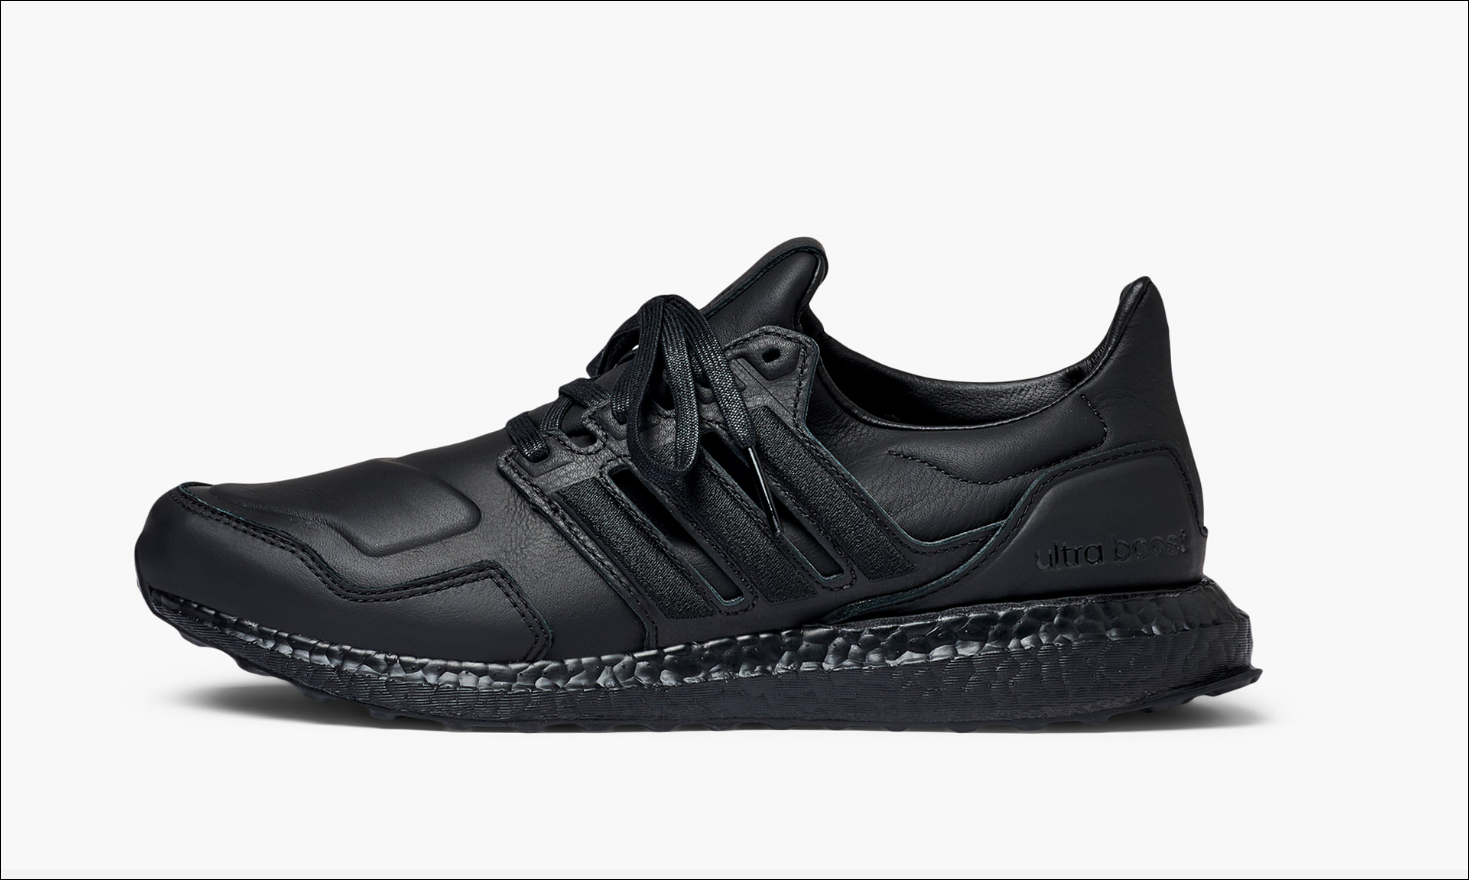 Adidas Ultra Boost Leather Black Men's